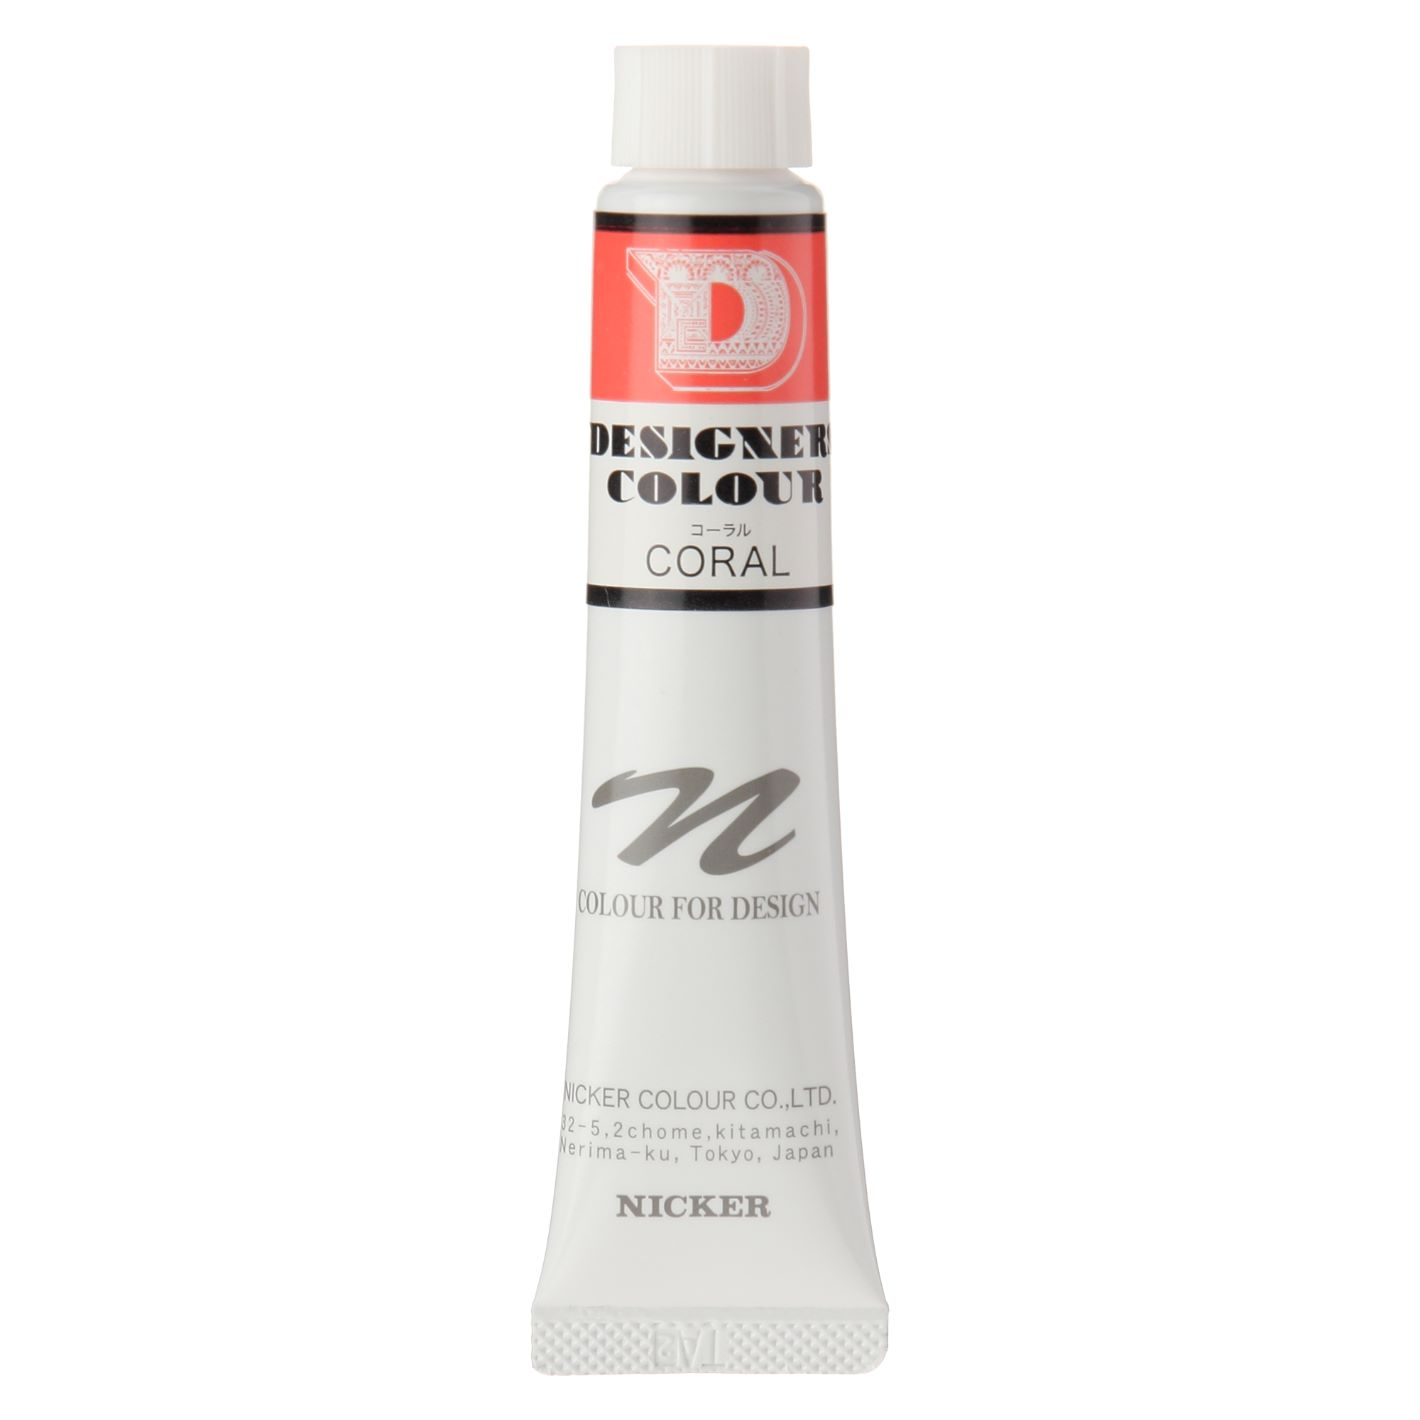 DESIGNERS COLOUR 20ml 516 CORAL